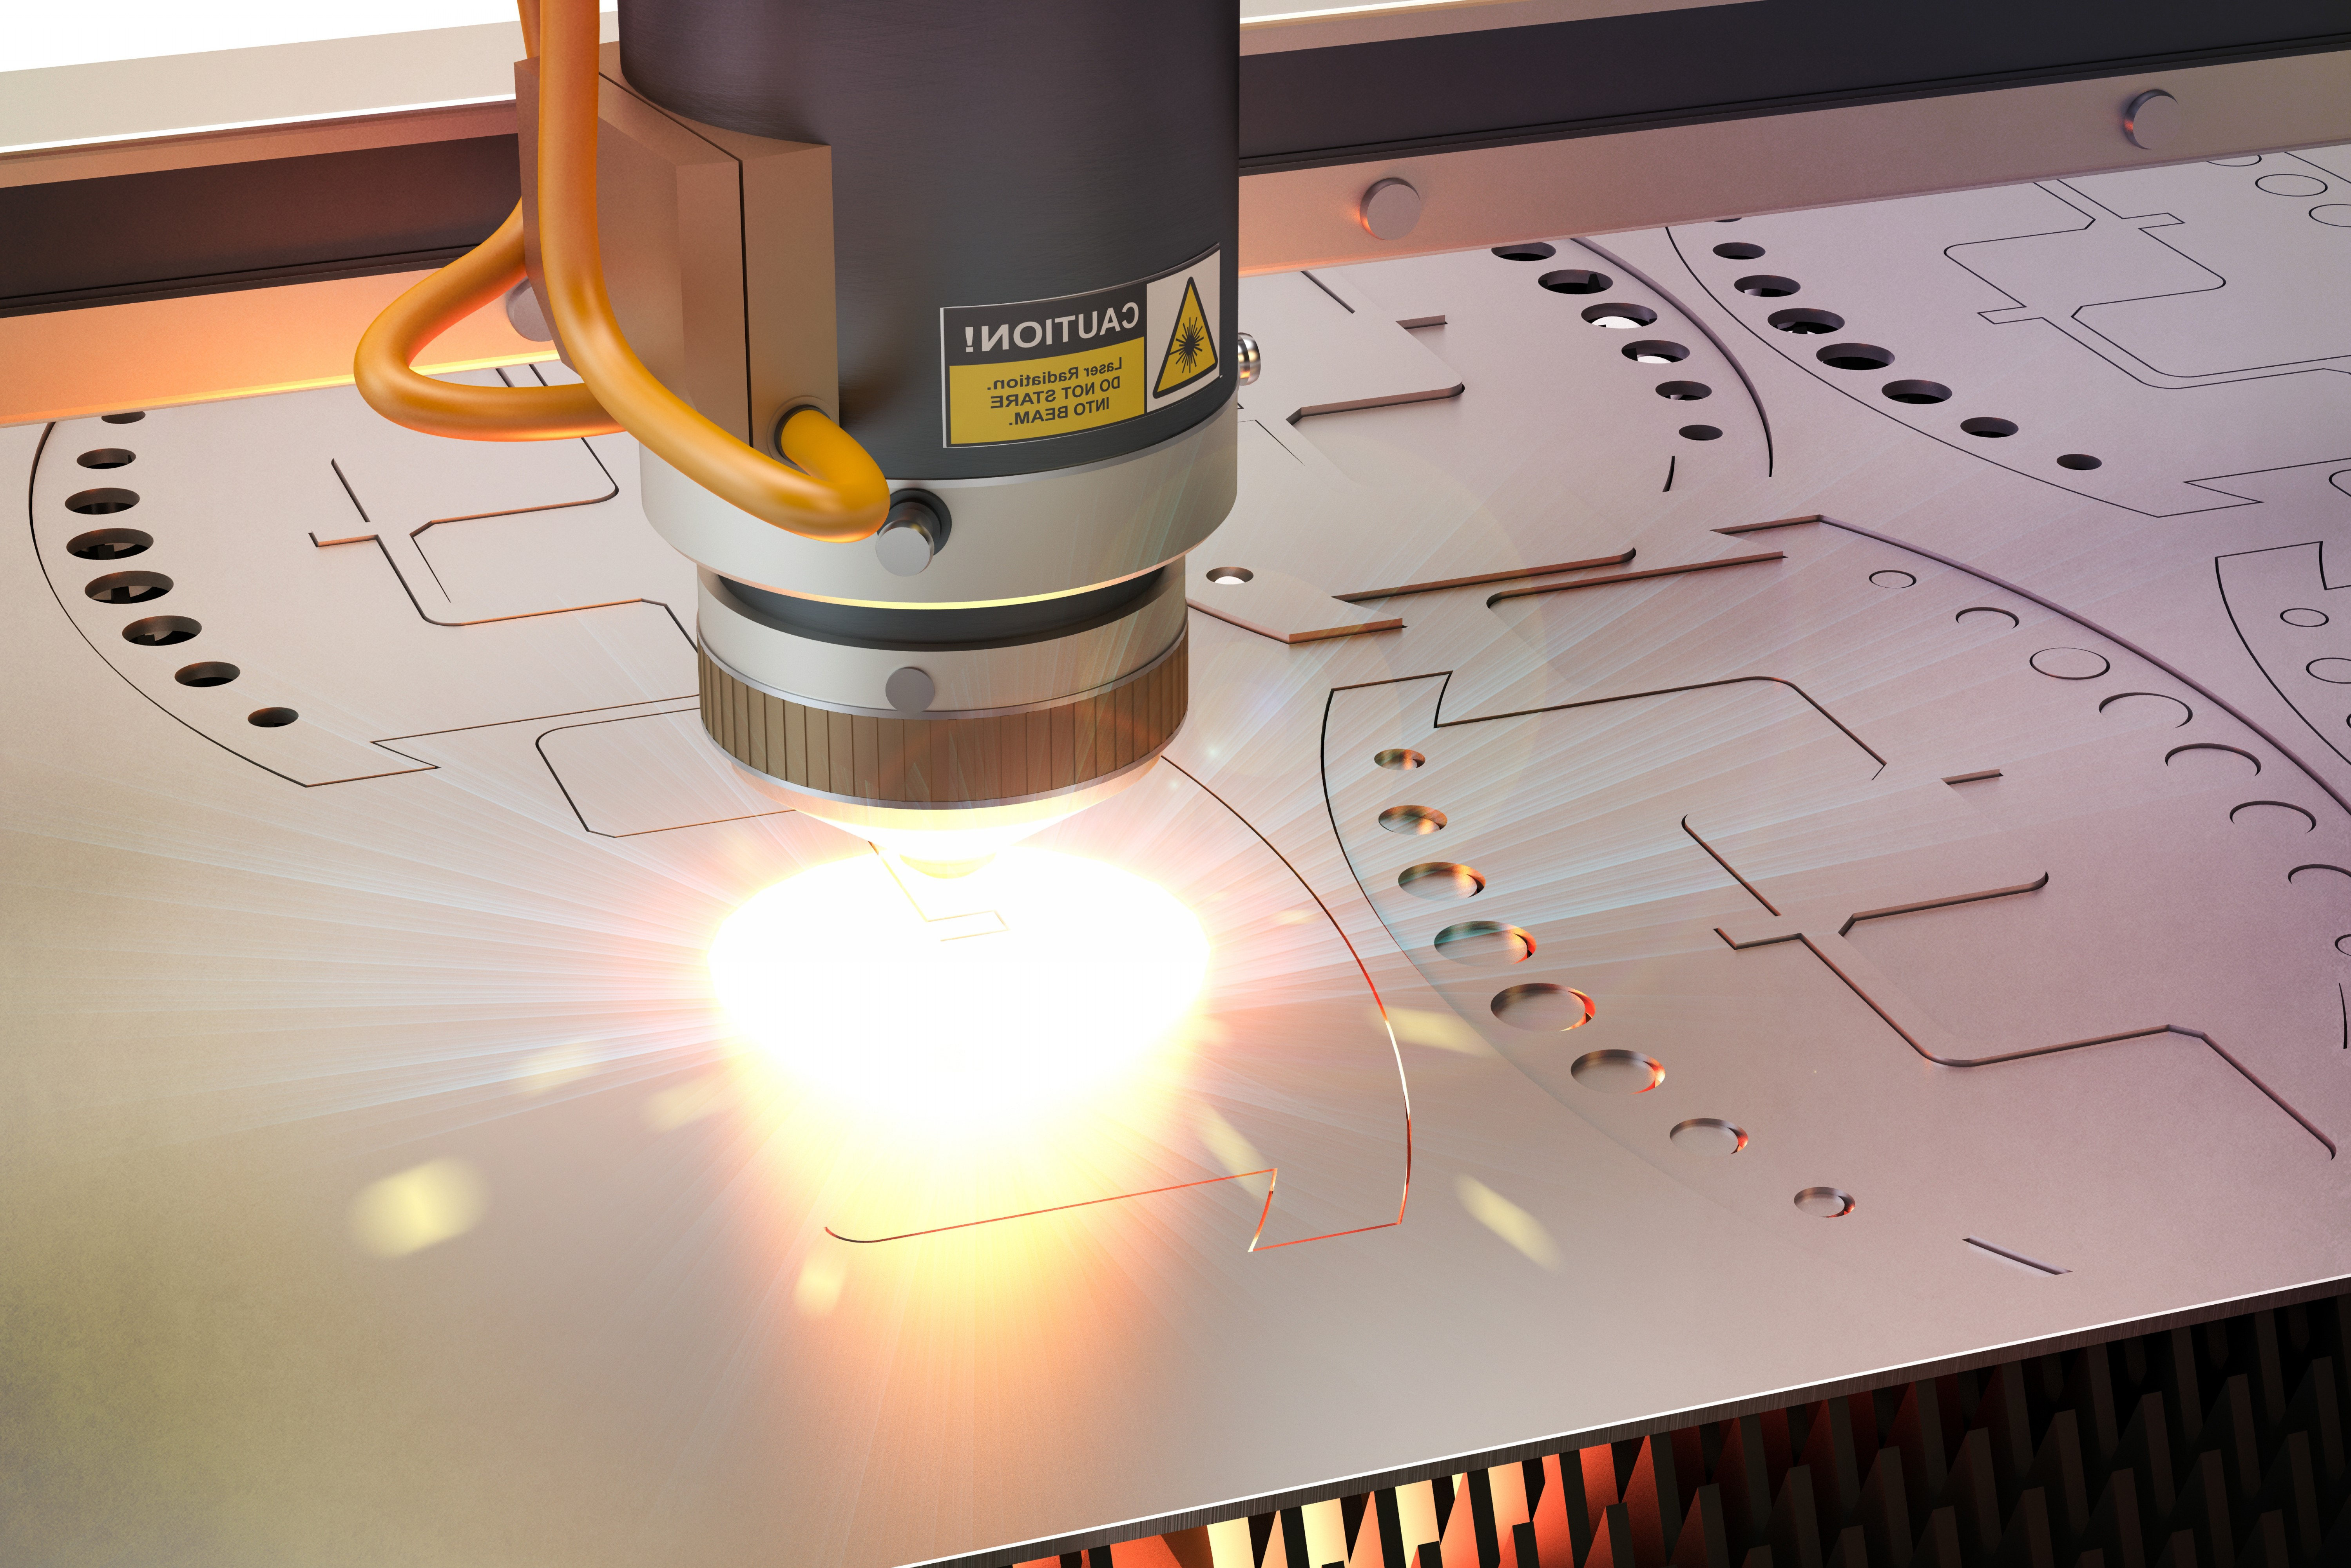 2D Vector Art For CNC Cutters: Top Software For Laser Cutting